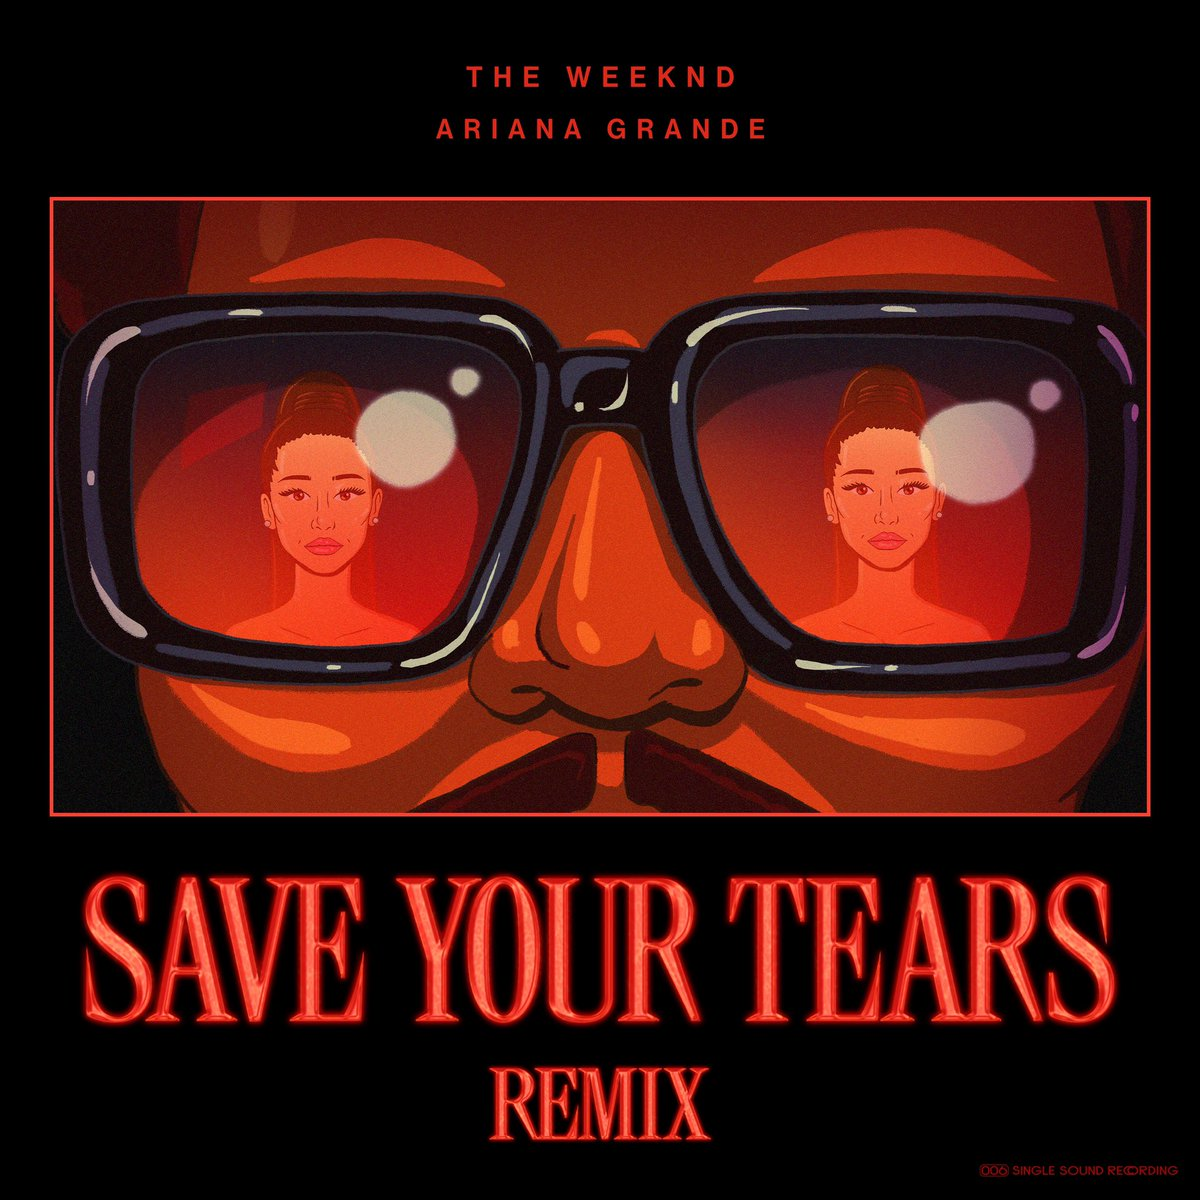 Save Your Tears Remix @theweeknd https://t.co/B5xNtFYh6P https://t.co/caIgc0ayfs